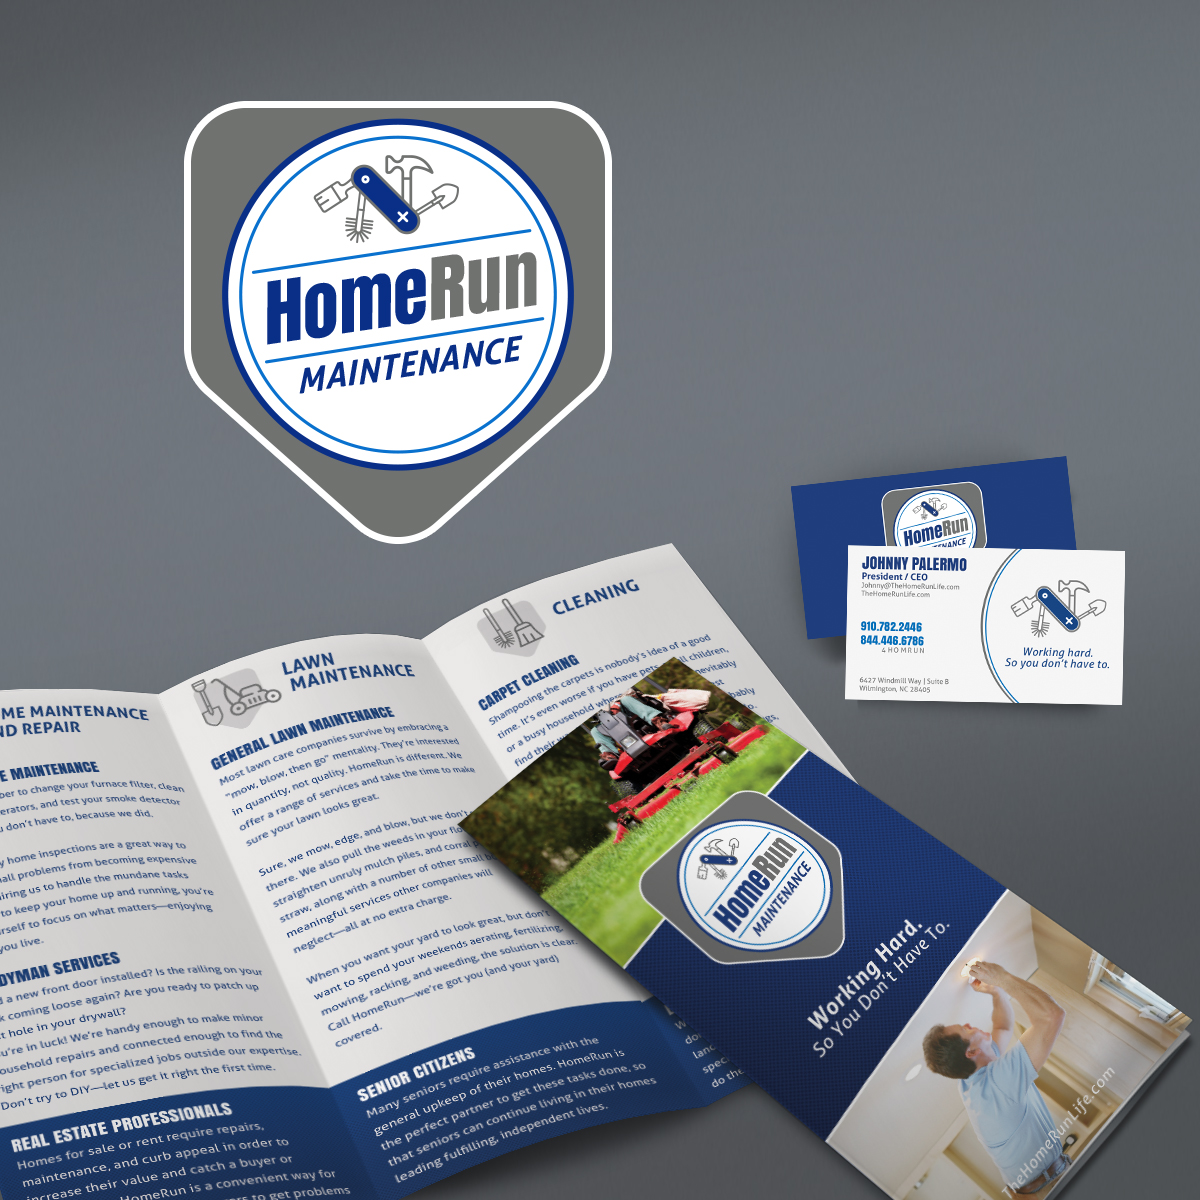 homerun-maintenance-branding-shared-post